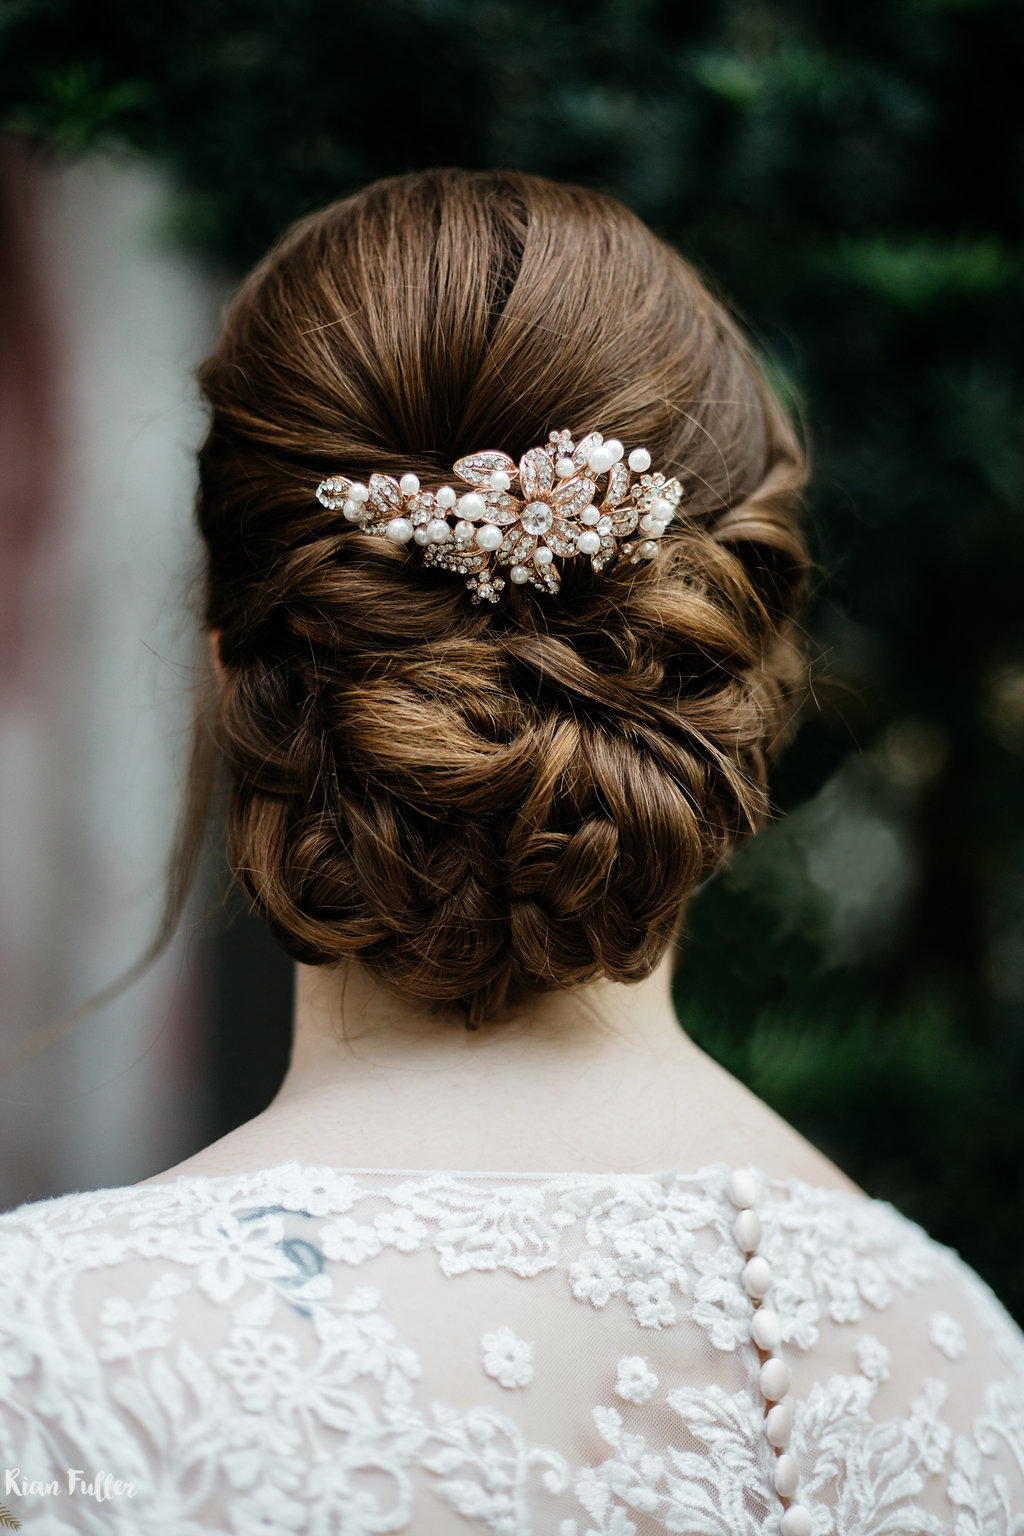 Bel Aire Bridals Hair Piece | Rian Fuller Photography